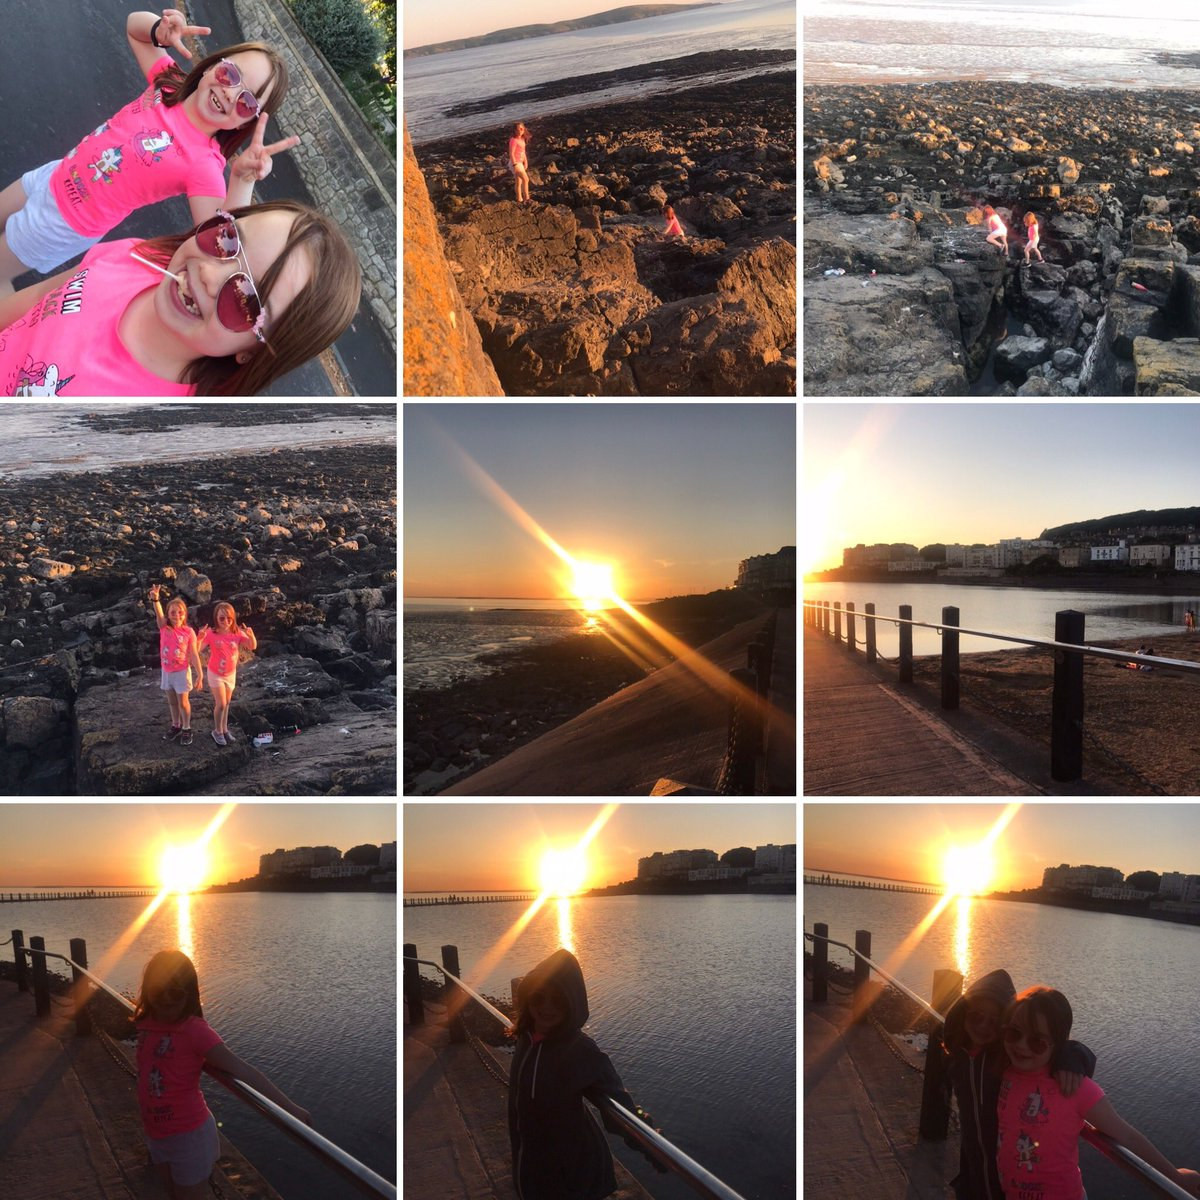 Lovely walk this evening with my mini-me's 👩👧👧 #lockdown #sunset